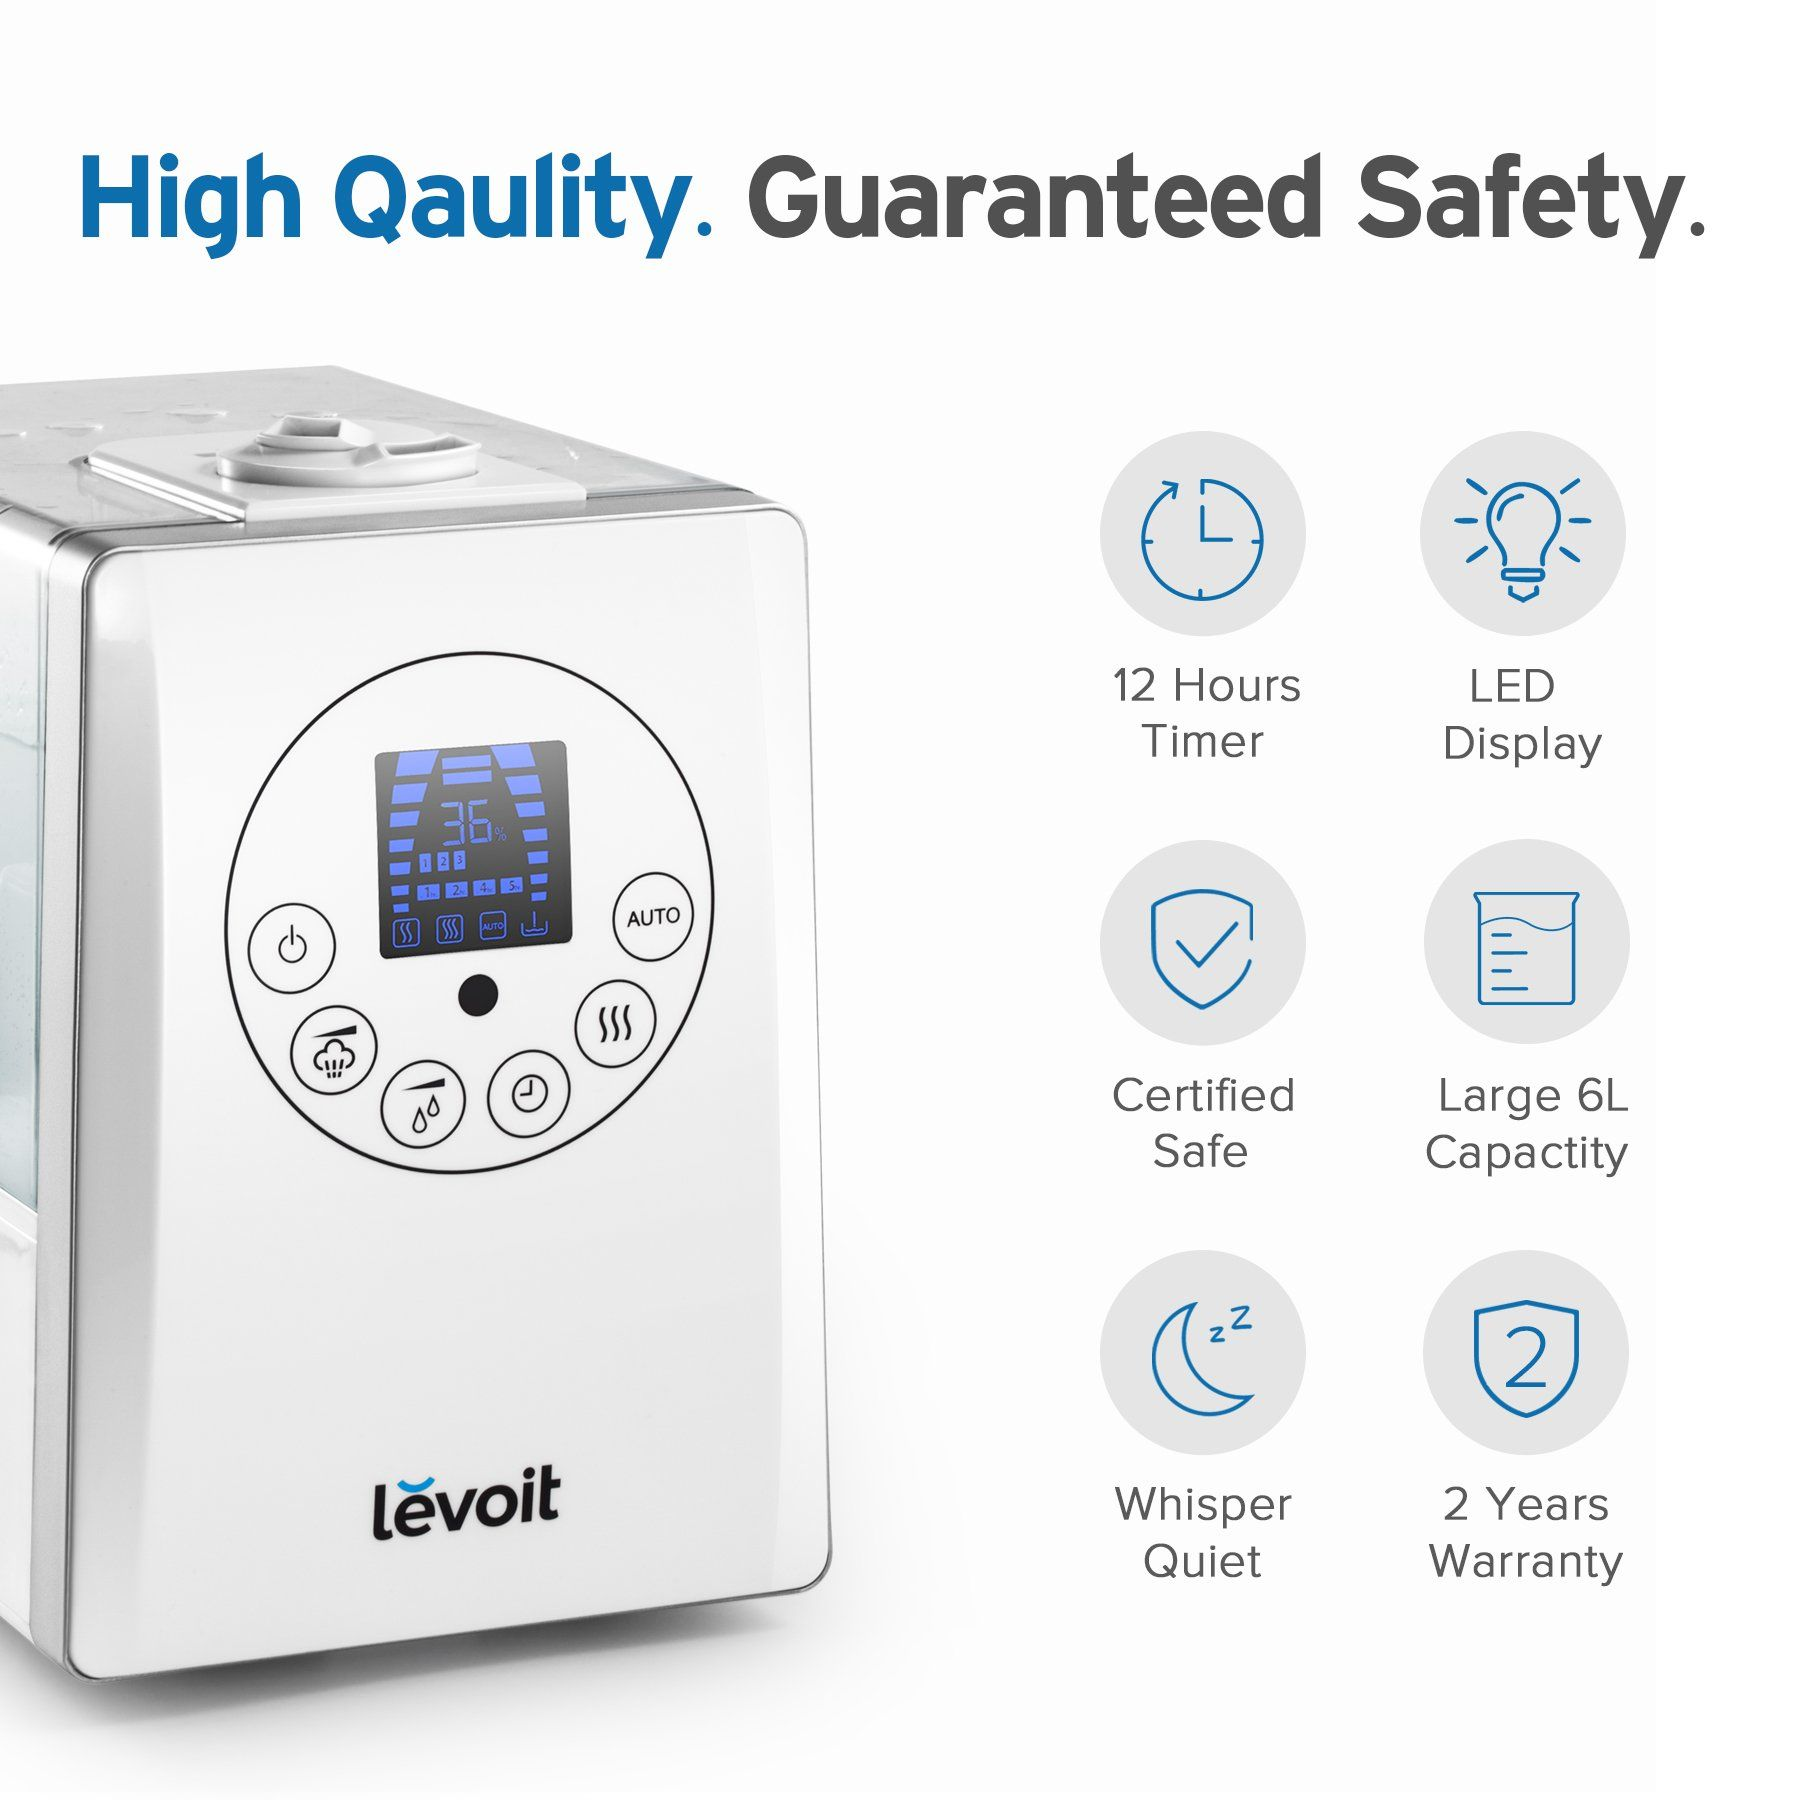 Levoit Humidifiers 6l Warm And Cool Mist Ultrasonic Humidifier For Bedroom With Remote And Humidity Monitor Vapor In 2020 Humidifier Air Humidifier Aroma Oil Diffusers